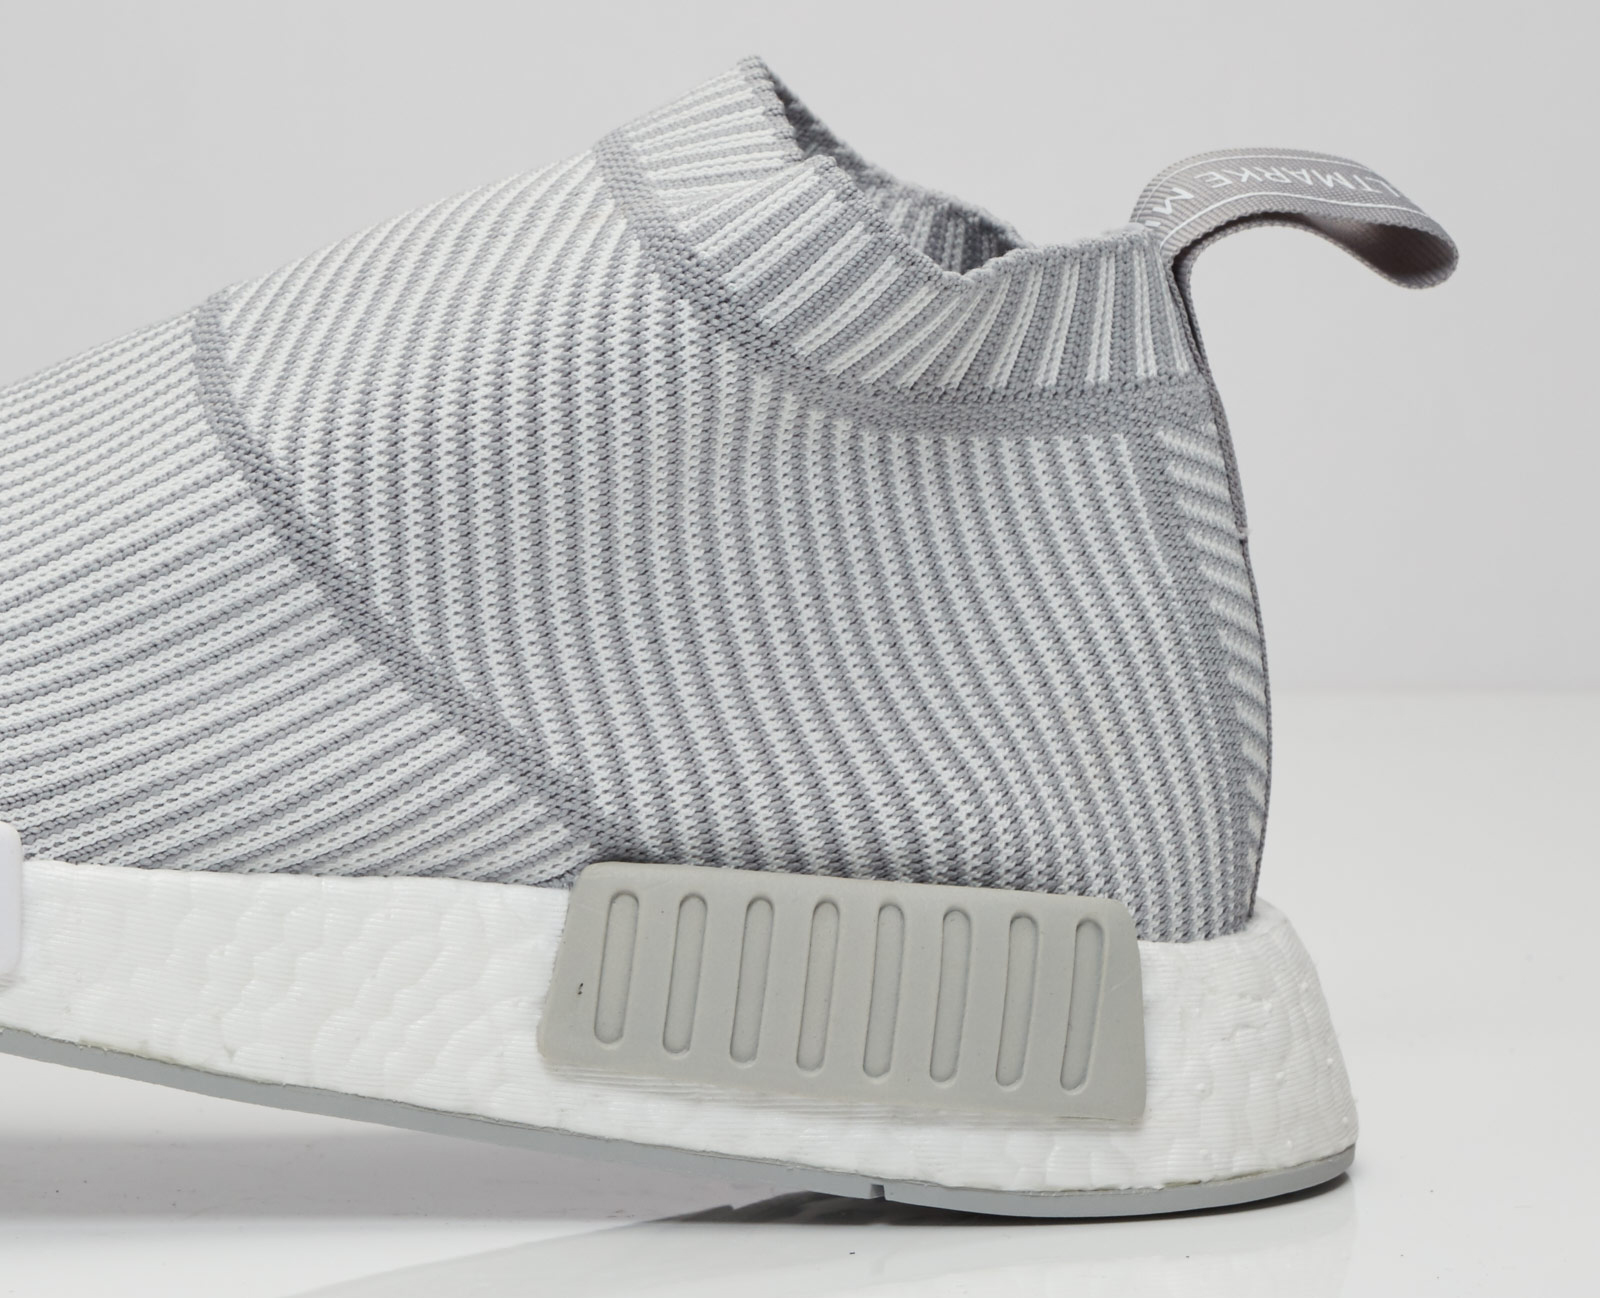 Adidas NMD City Sock Grey White Rear Detail